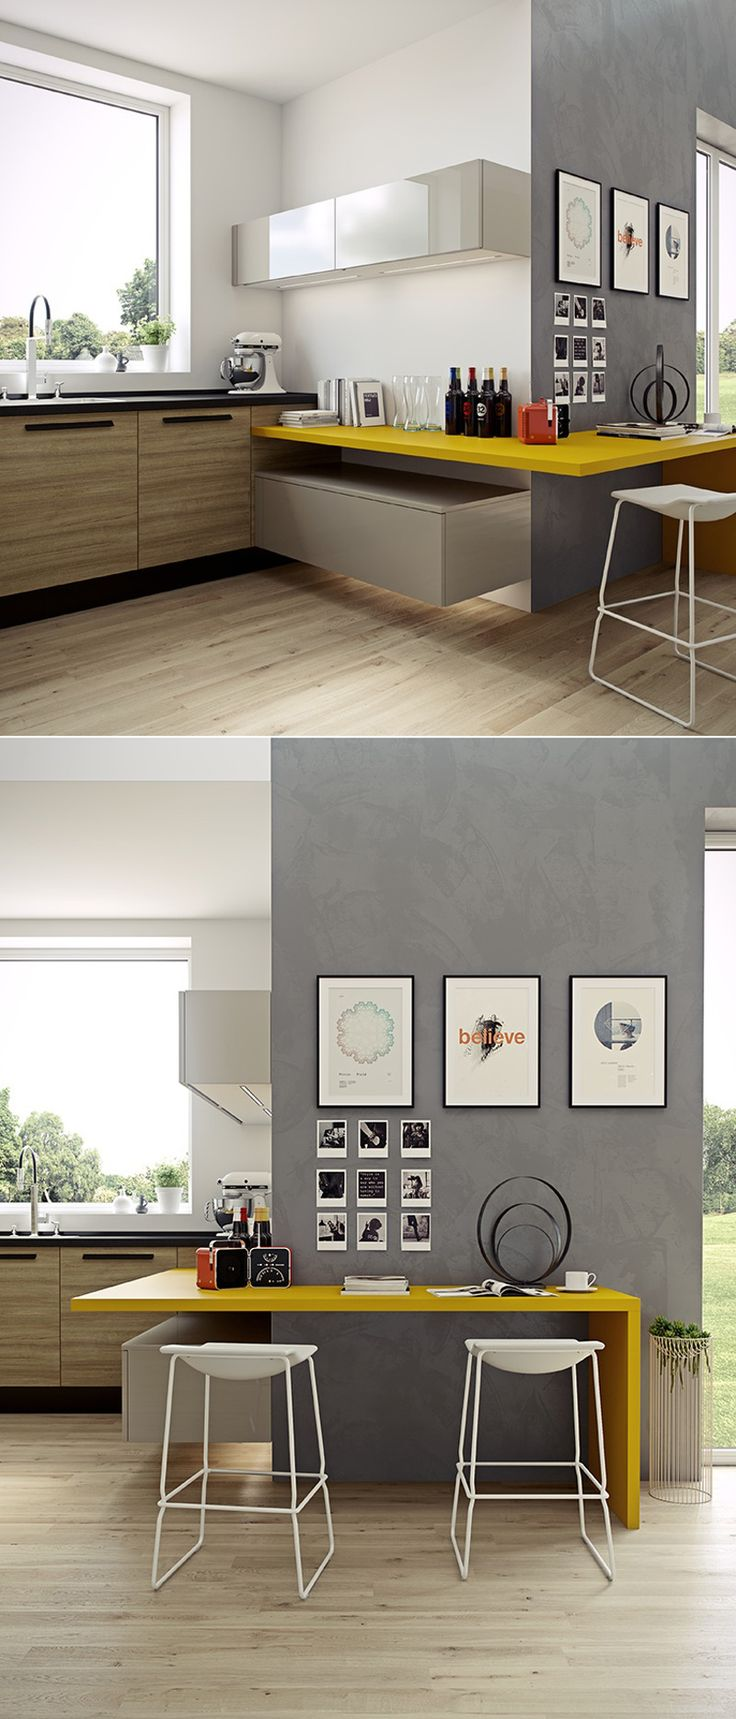 The Hottest Kitchen Trends for 2015   http://www.designrulz.com/design/2015/08/the-hottest-kitchen-trends-for-2015/